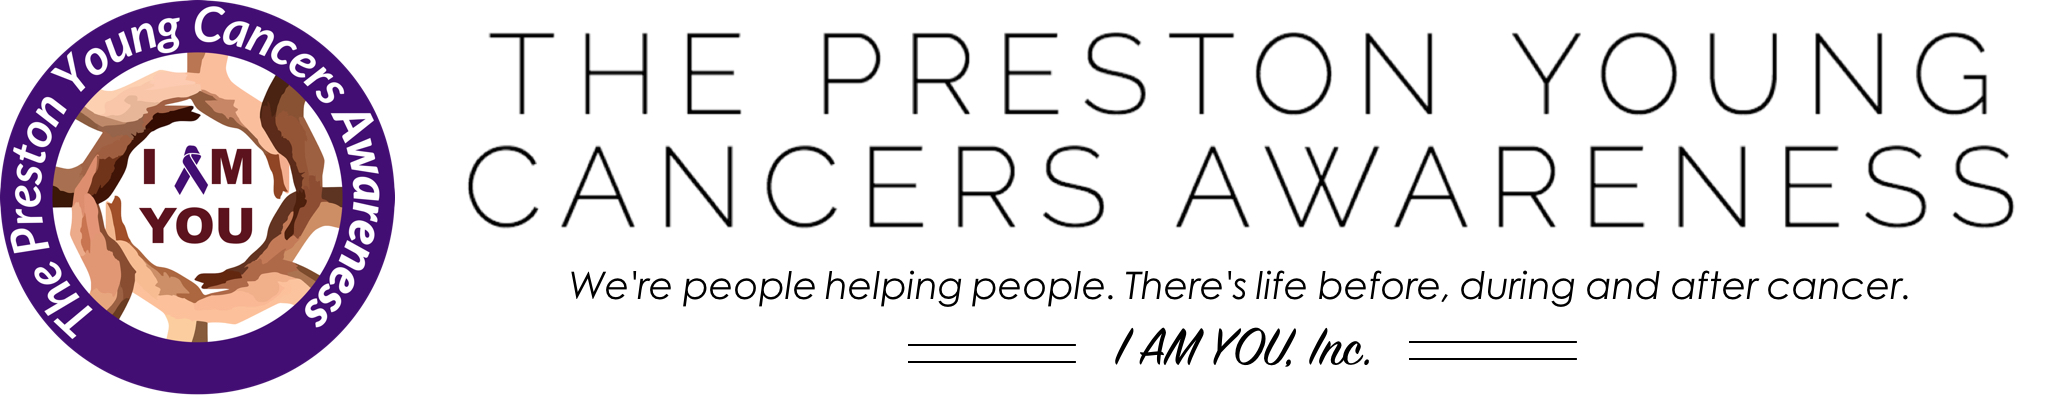 The Preston Young Cancers Awareness